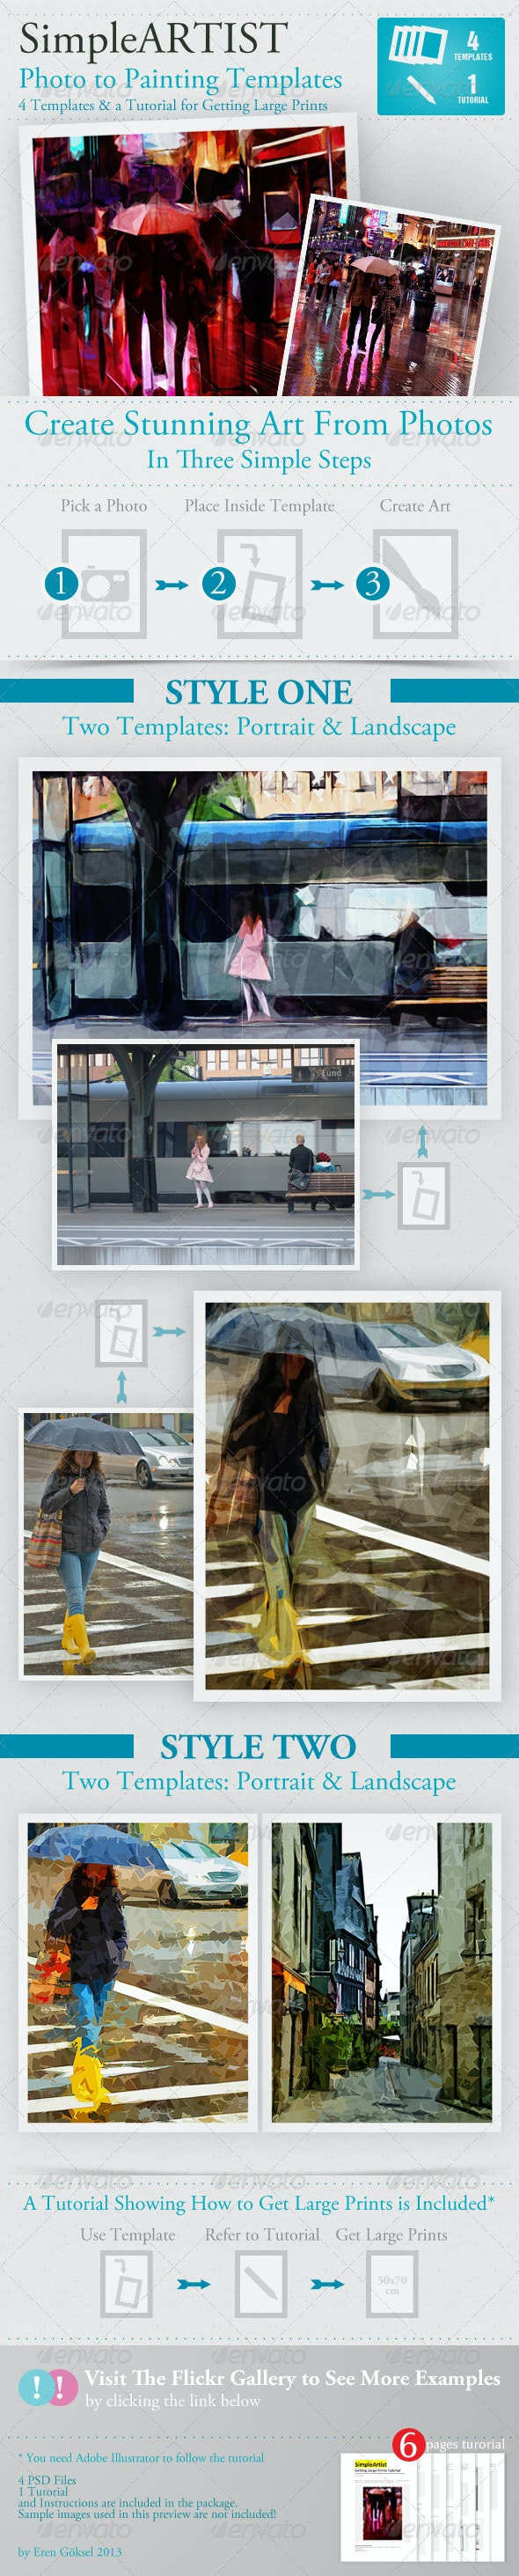 Simple Artist Painting Template - Artistic Photo Templates